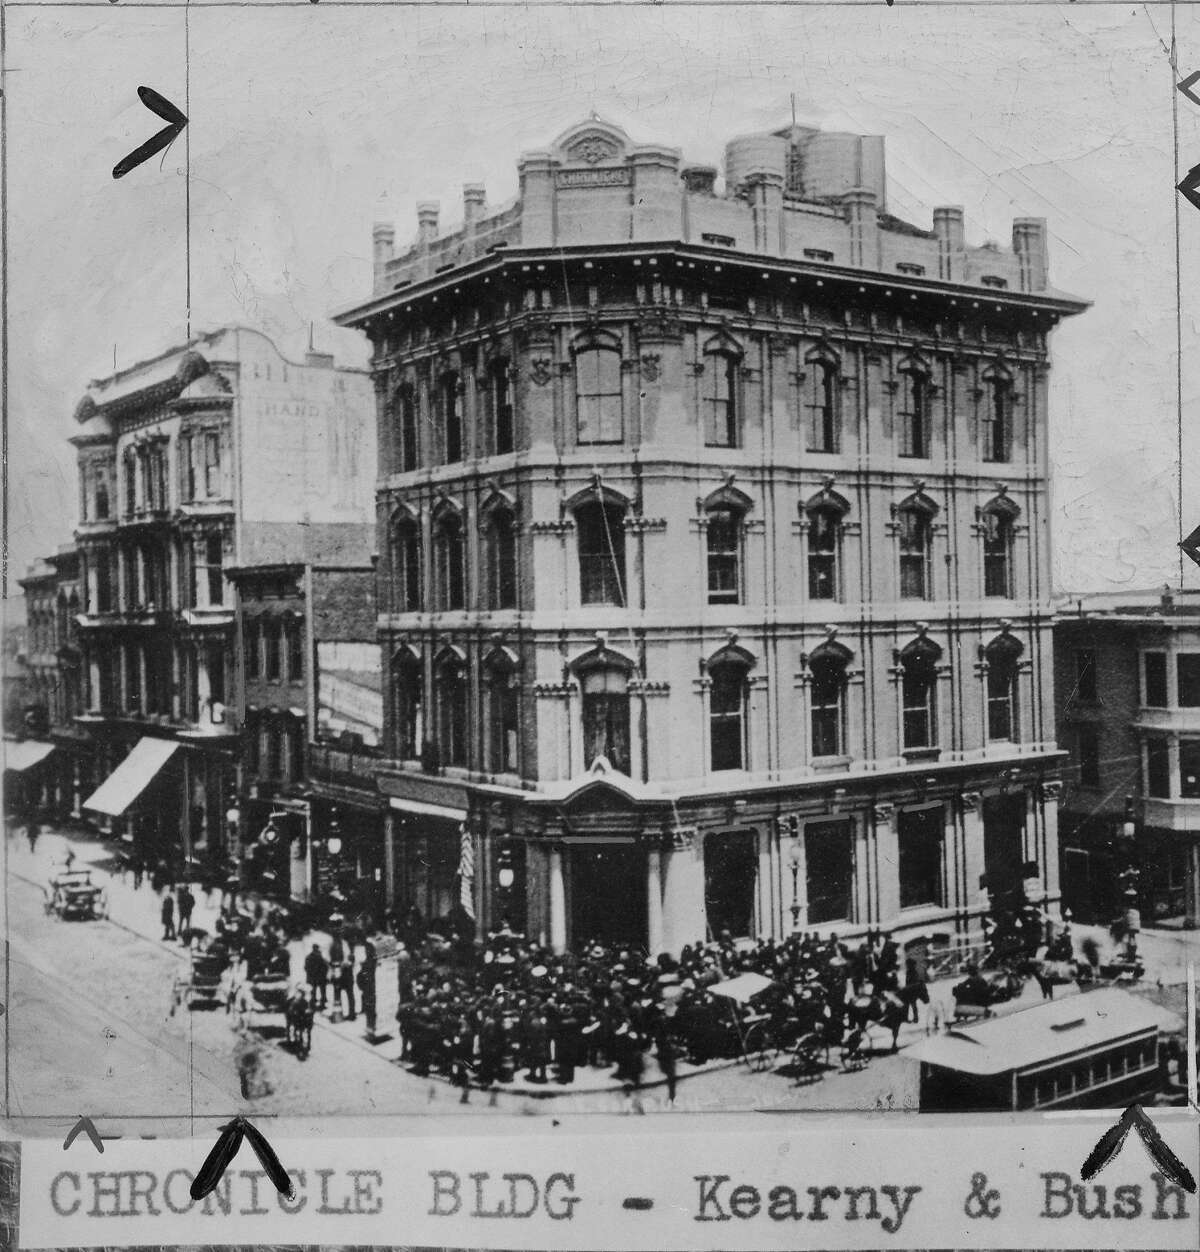 Charles de Young was fatally shot in the old Chronicle building at Kearny and Bush streets.